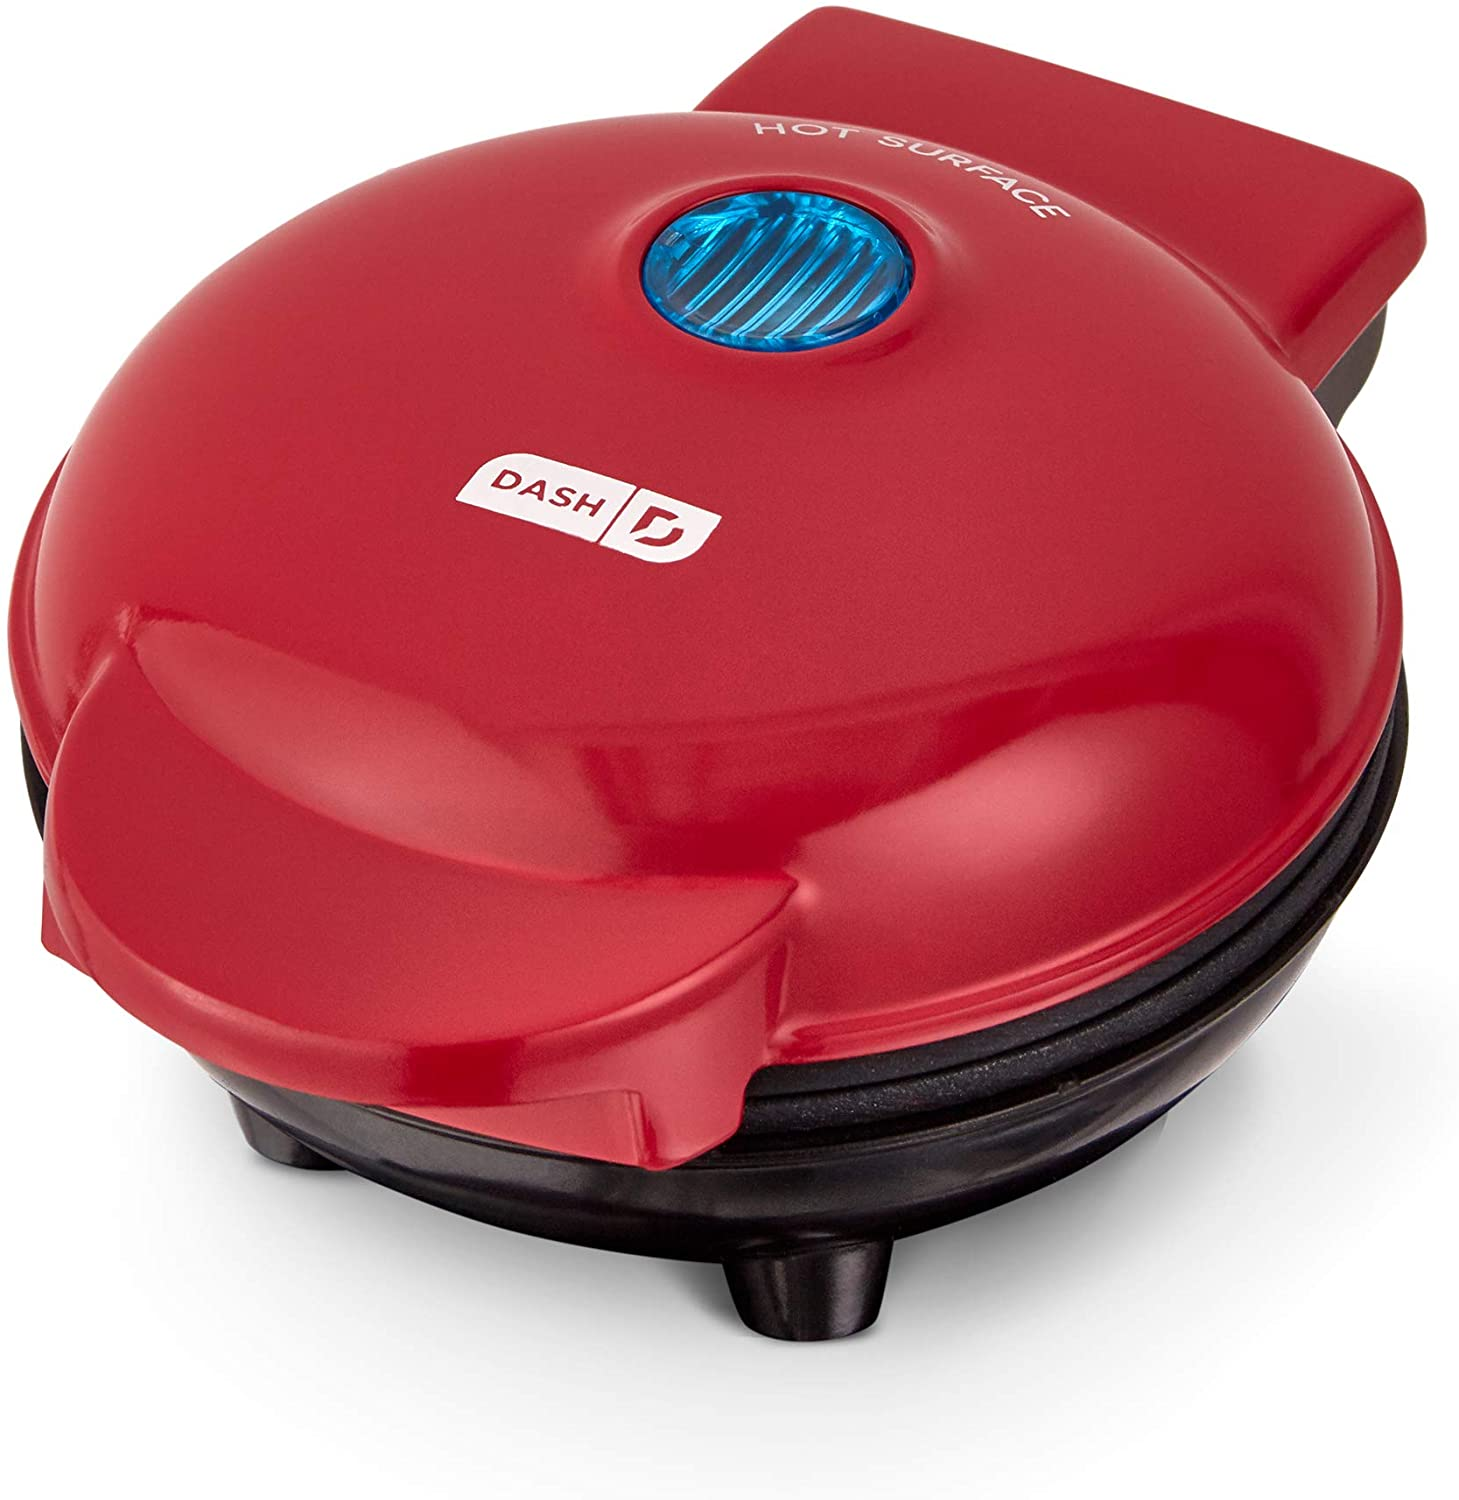 Dash Mini Maker Portable Grill Machine + Panini Press for Gourmet Burgers, Sandwiches, Chicken + Other On the Go Breakfast, Lunch, or Snacks with Recipe Guide - Red